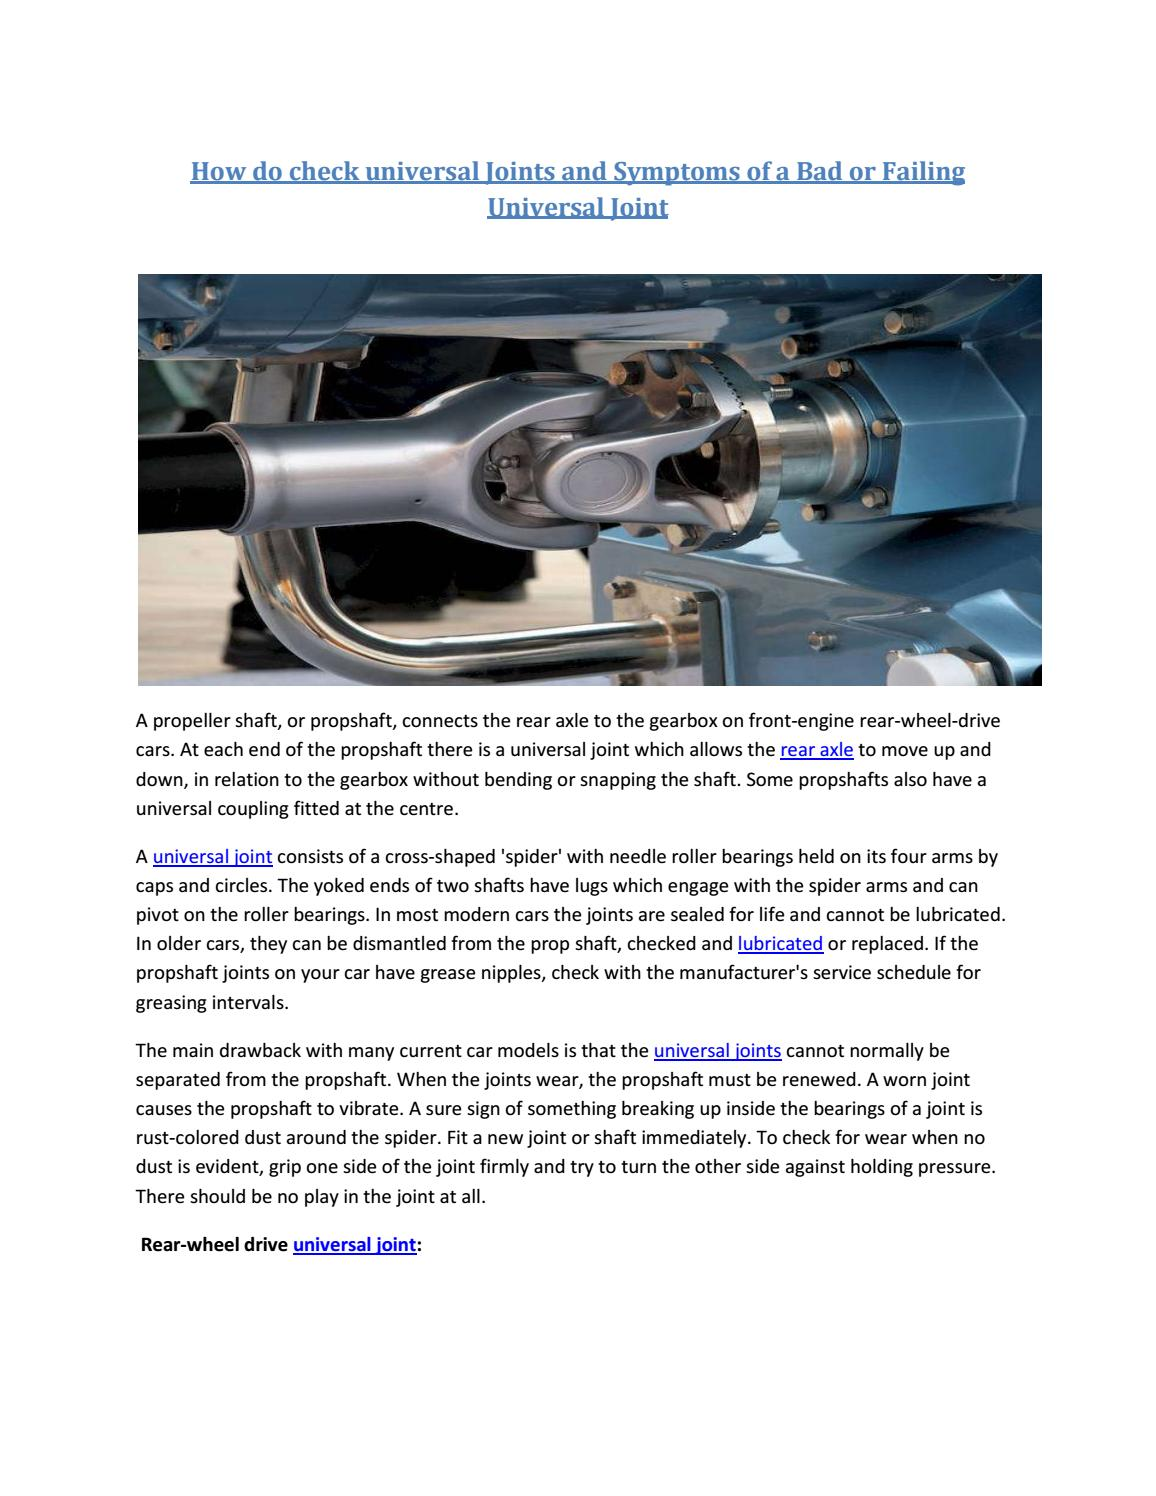 Partsavatar Replacement Parts CA - check universal Joints